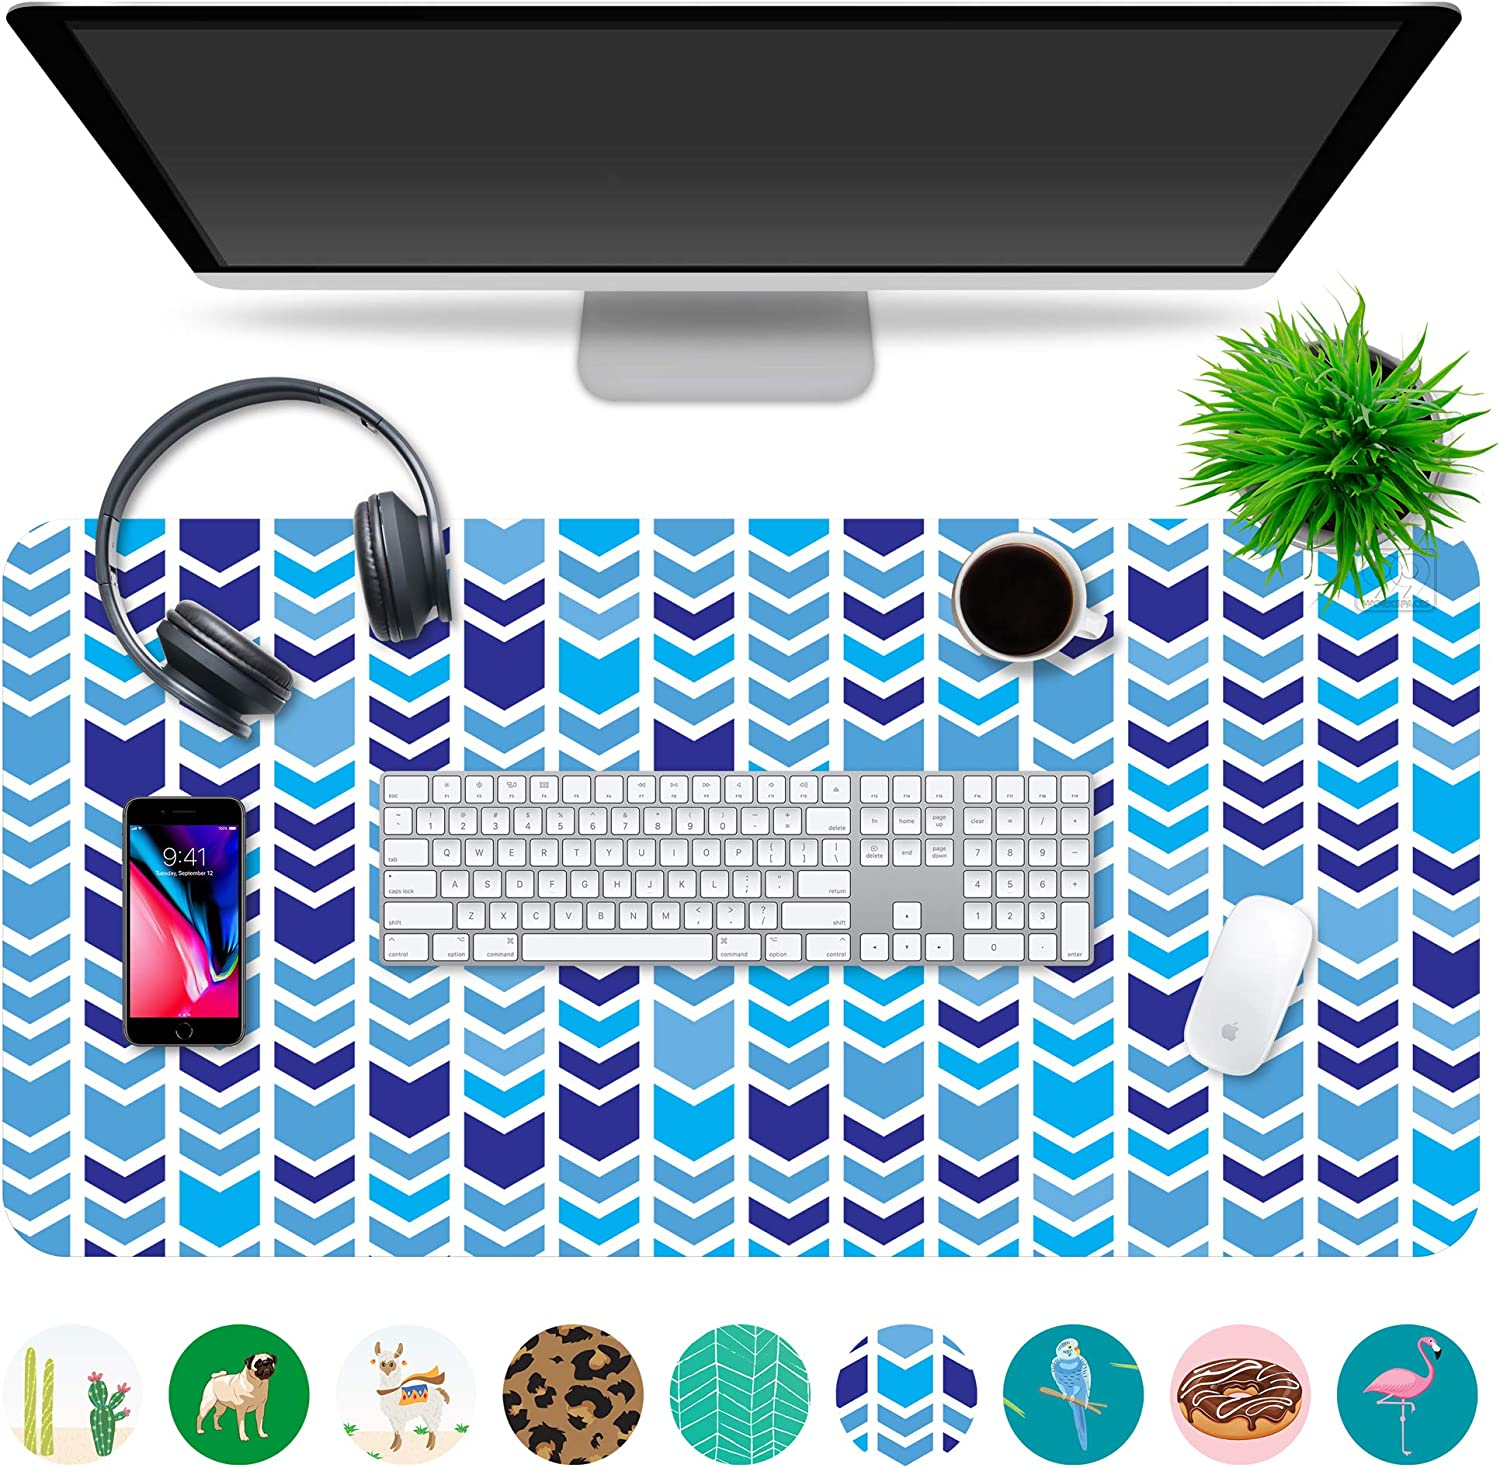 "Multipurpose Office Desk Pad and Computer Desk Mat - Waterproof Office Desk Mat and Desk Blotter Pad - Home Office Accessories (Large (35.5"" x 17.5""), Chevron)"